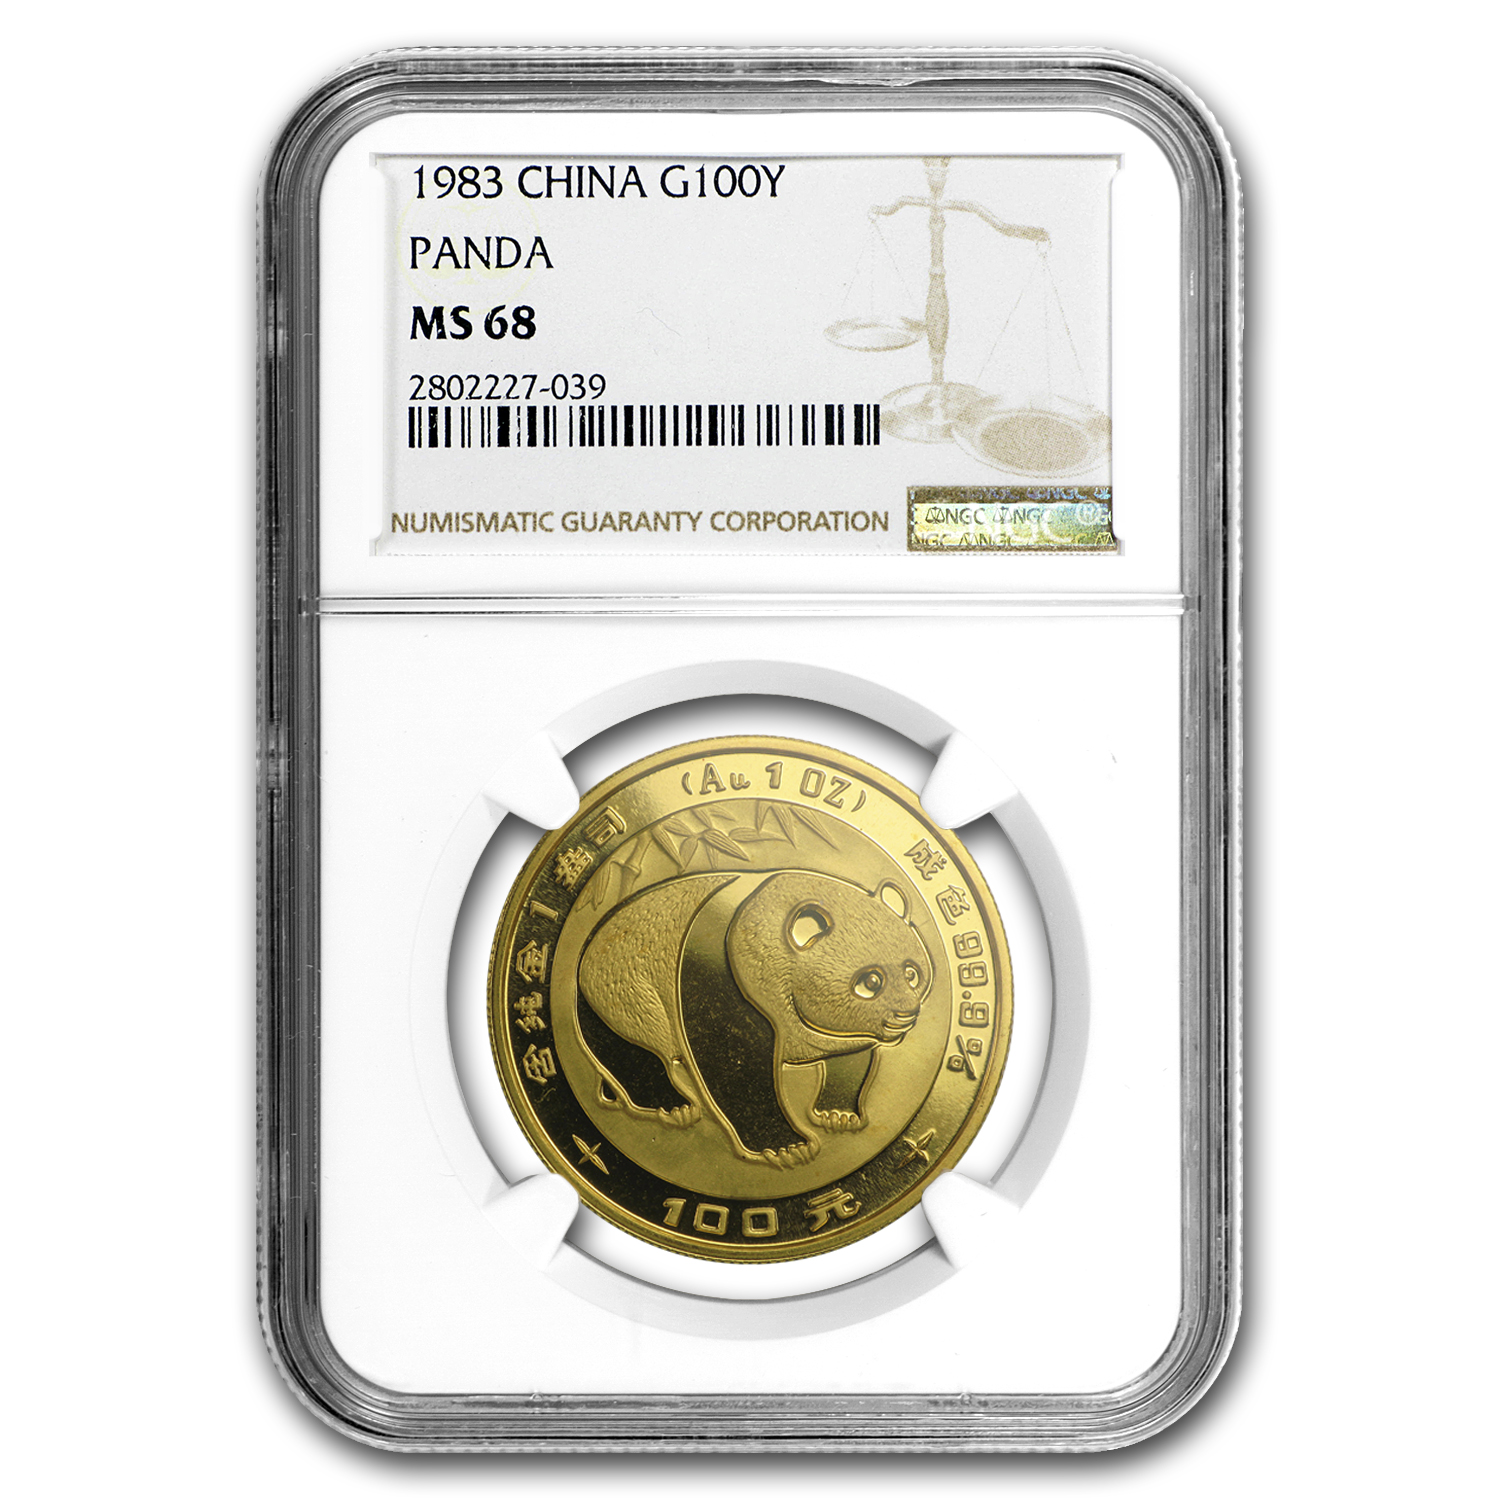 1983 China 1 oz Gold Panda MS-68 NGC